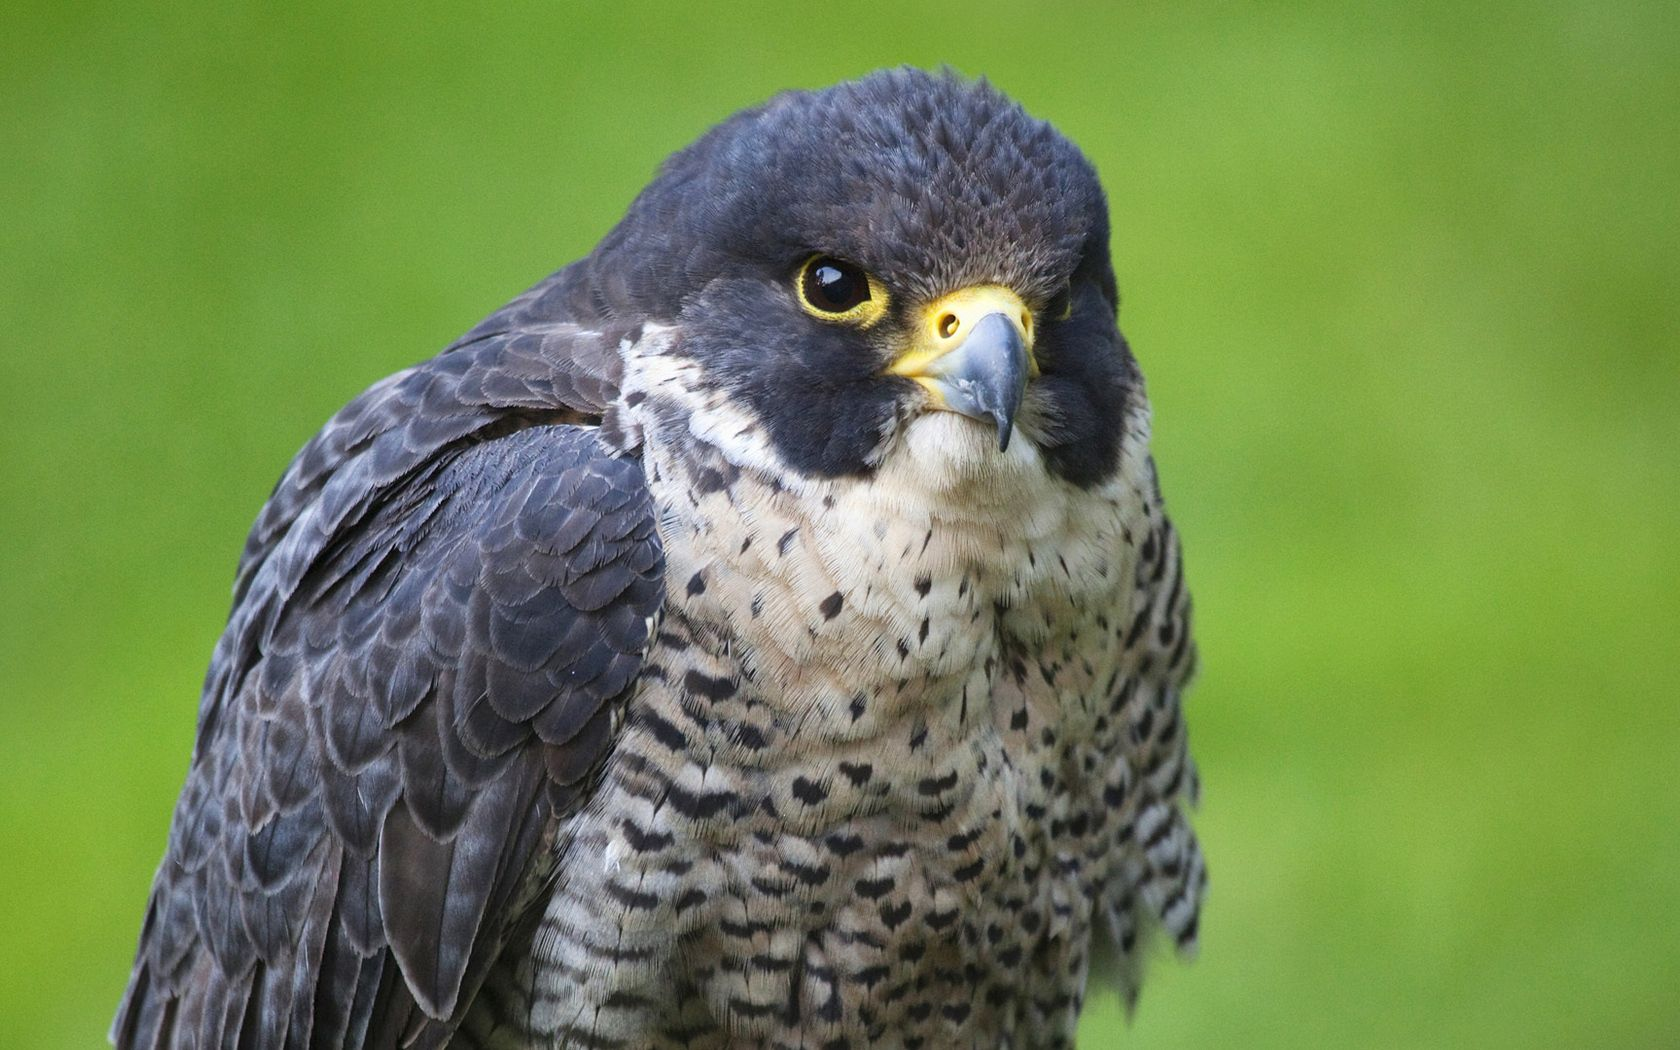 134447 download wallpaper Animals, Bird, Hawk, Predator screensavers and pictures for free